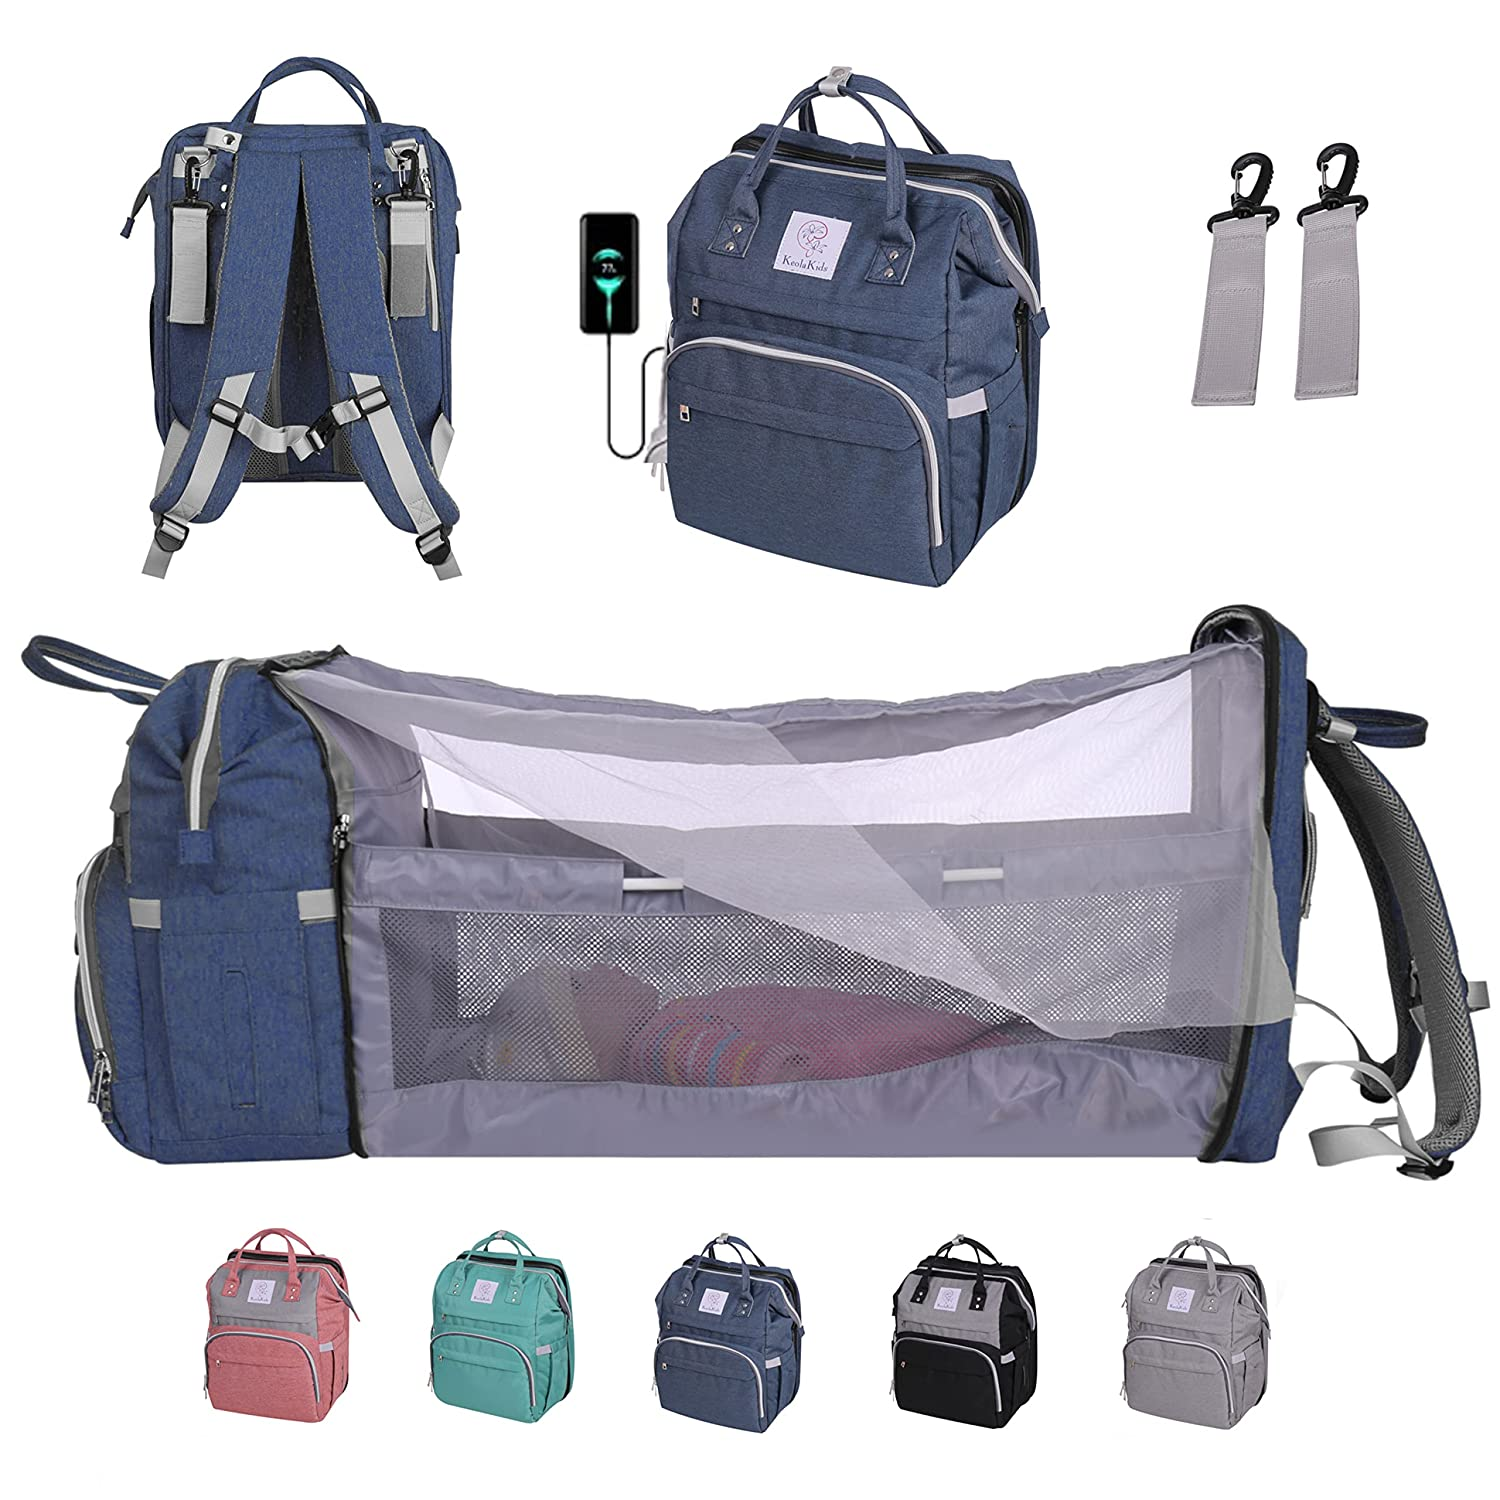 KEOLAKIDS Diaper Bag Backpack with Portable Crib Bassinet, Gift for Baby Shower, Changing Pad, Mosquito Netting, USB Port - Blue